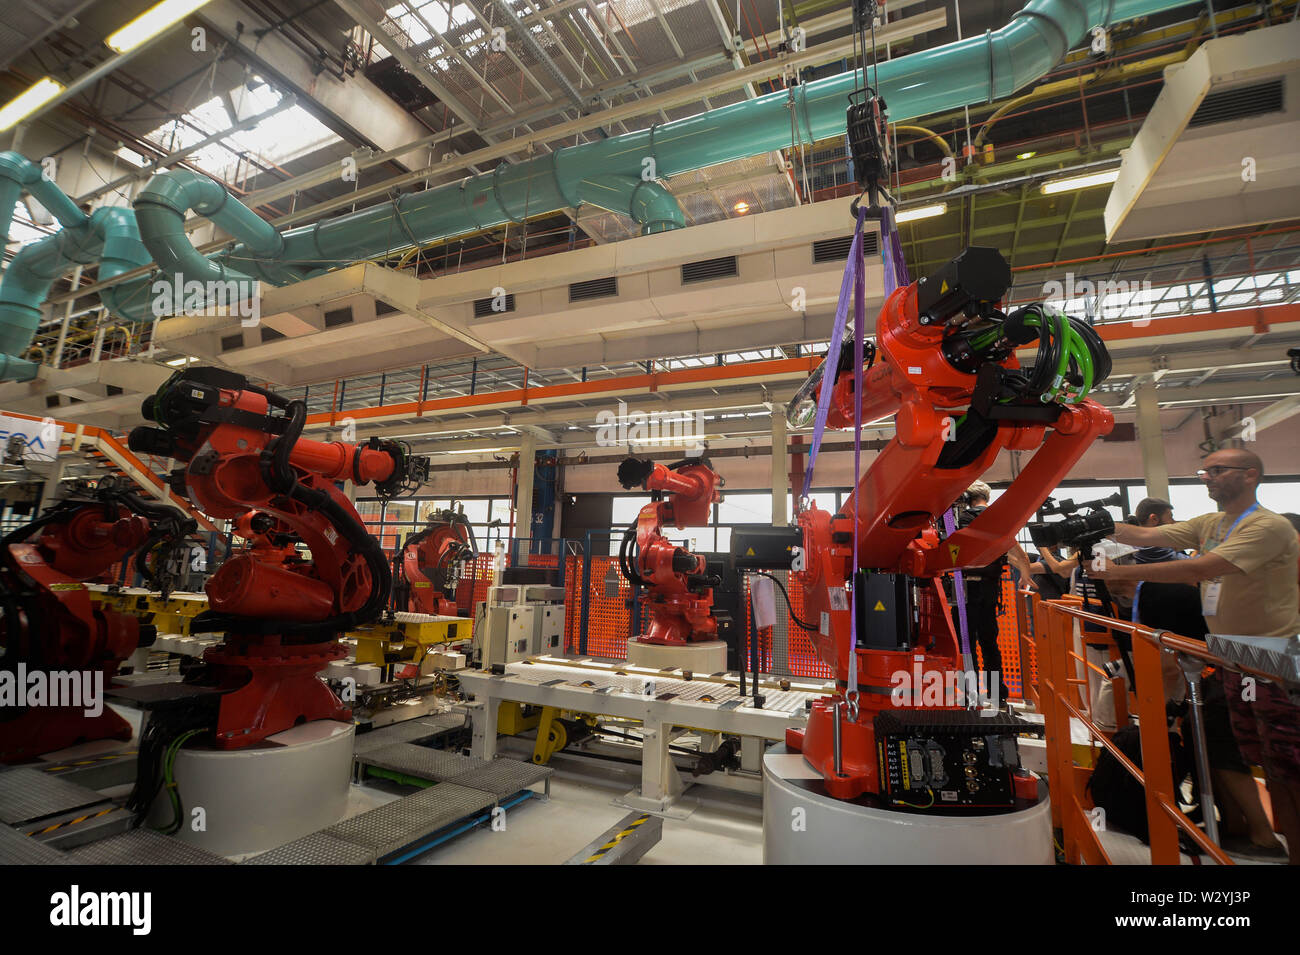 FIAT CHRYSLER AUTOMOBILES CORPORATE INSTALATION FIRST ROBOT FOR THE NEW 500 MIRAFIORI LINE (Edoardo Sismondi/Fotogramma, TORINO - 2019-07-11) p.s. la foto e' utilizzabile nel rispetto del contesto in cui e' stata scattata, e senza intento diffamatorio del decoro delle persone rappresentate Stock Photo